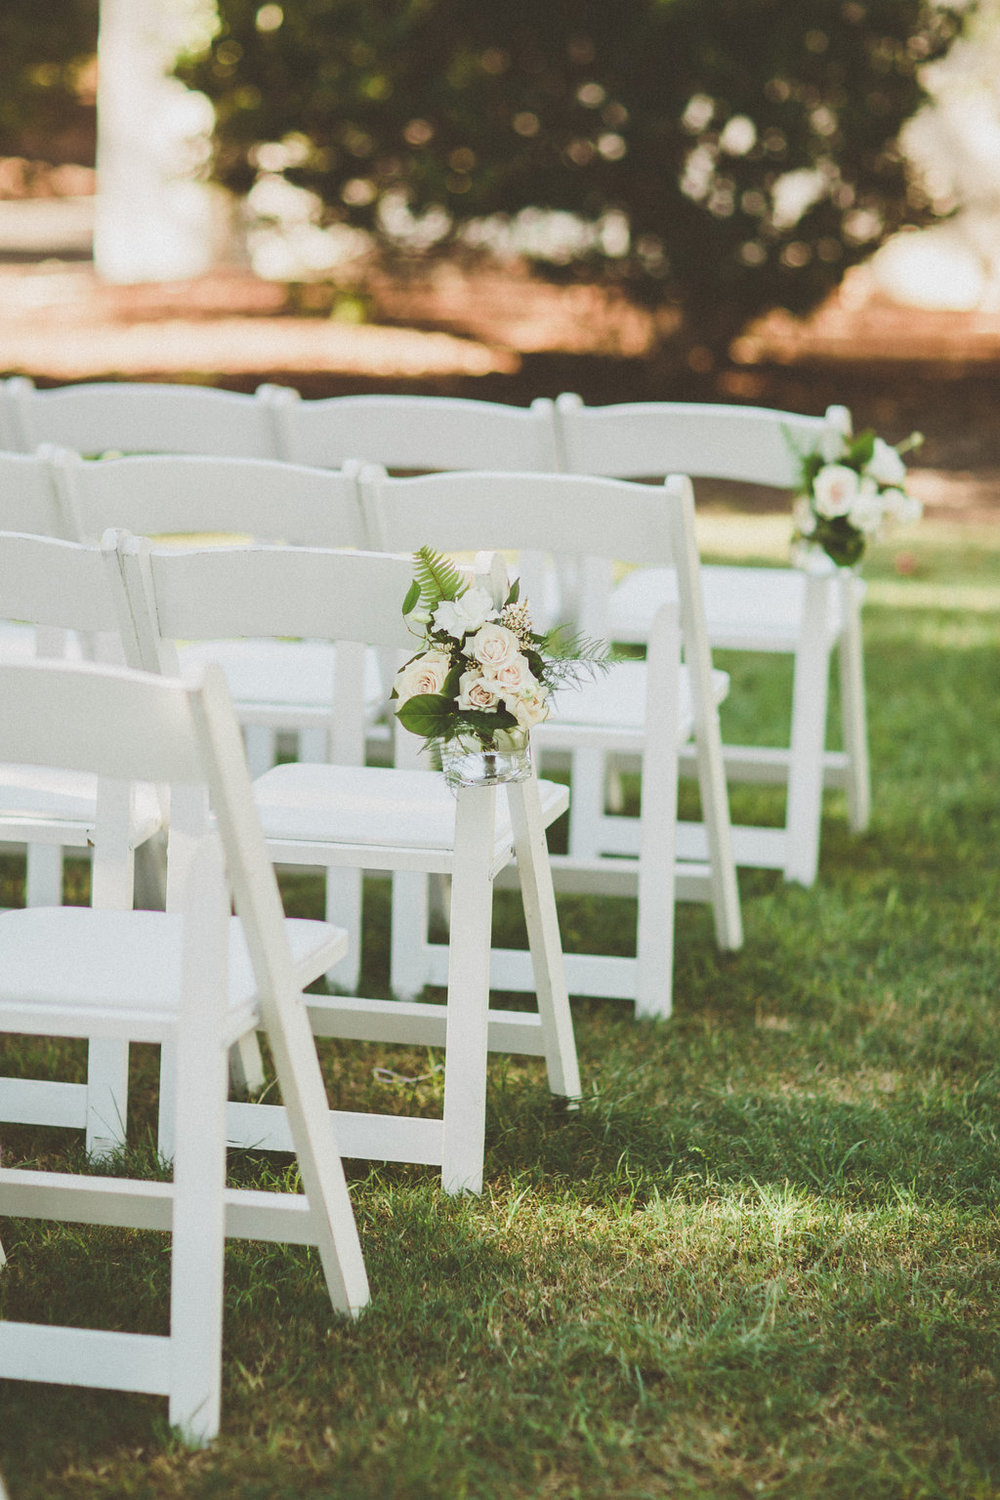 "Ceremony aisle decor          96               Normal   0           false   false   false     EN-US   X-NONE   X-NONE                                                                                                                                                                                                                                                                                                                                                                                                                                                                                                                                                                                                                                                                                                                                                                                                                                                                                  /* Style Definitions */ table.MsoNormalTable 	{mso-style-name:""Table Normal""; 	mso-tstyle-rowband-size:0; 	mso-tstyle-colband-size:0; 	mso-style-noshow:yes; 	mso-style-priority:99; 	mso-style-parent:""""; 	mso-padding-alt:0in 5.4pt 0in 5.4pt; 	mso-para-margin:0in; 	mso-para-margin-bottom:.0001pt; 	mso-pagination:widow-orphan; 	font-size:12.0pt; 	font-family:Calibri; 	mso-ascii-font-family:Calibri; 	mso-ascii-theme-font:minor-latin; 	mso-hansi-font-family:Calibri; 	mso-hansi-theme-font:minor-latin;}       by San Diego wedding florist, Compass Floral."